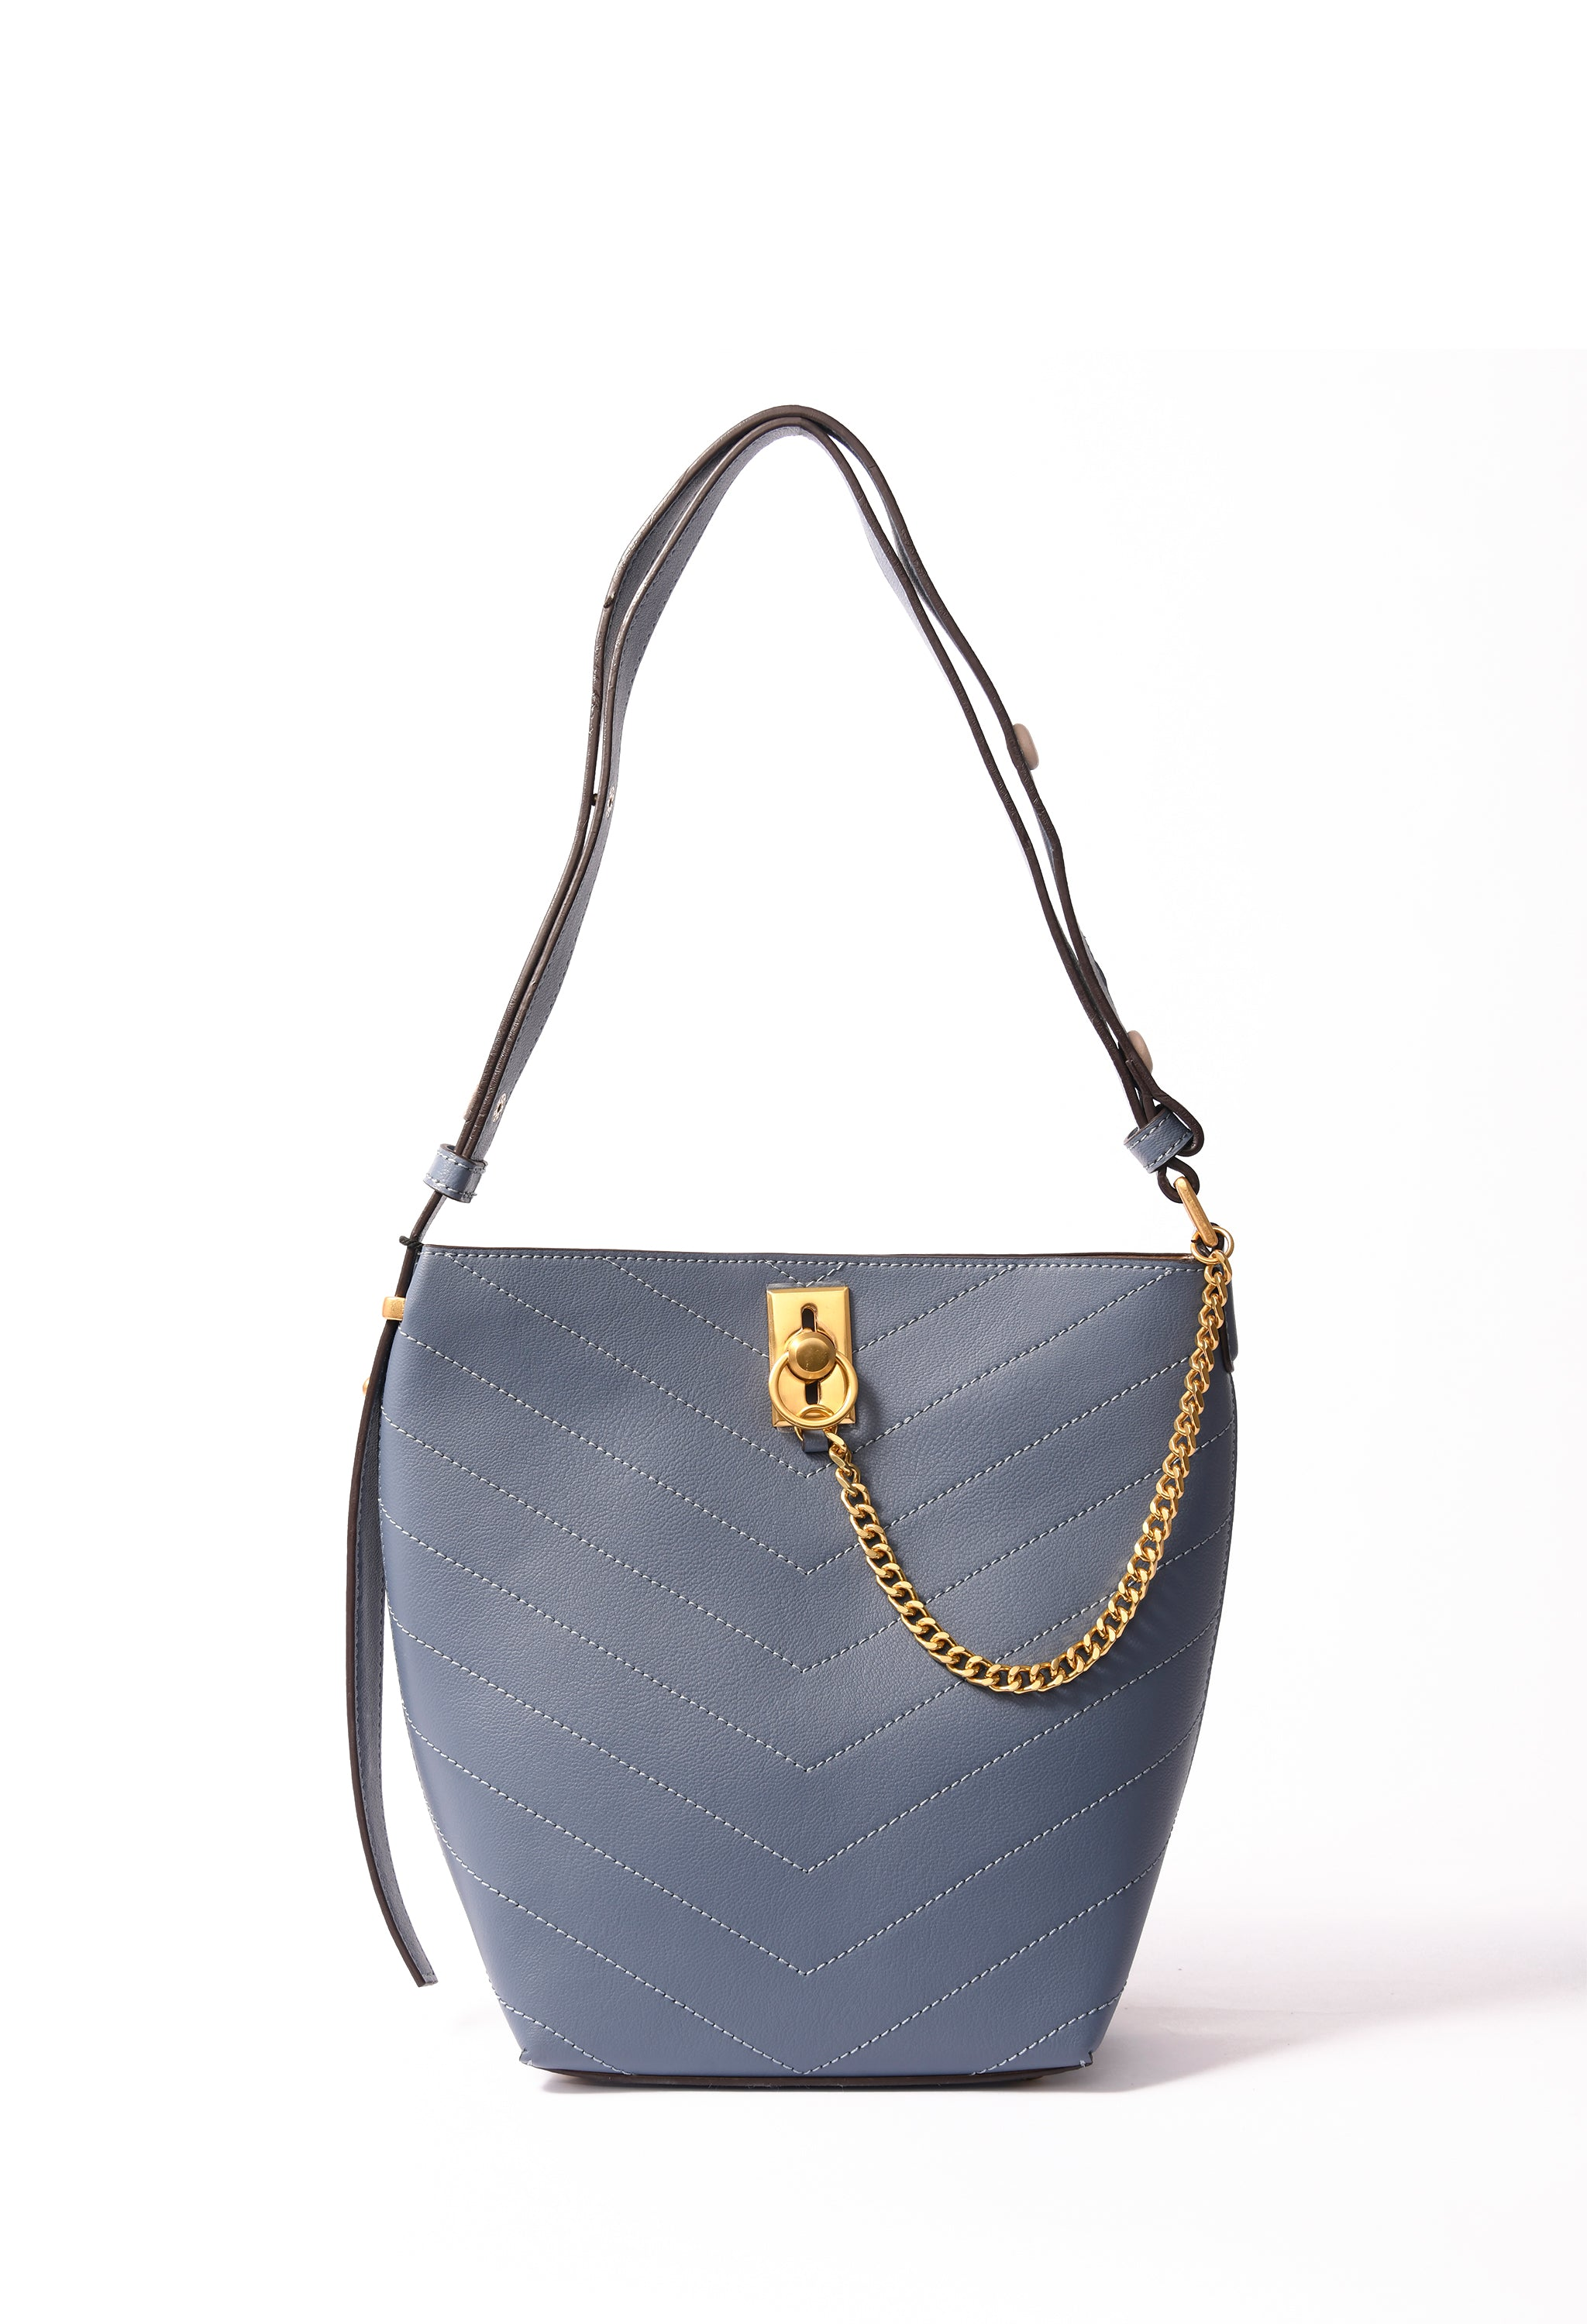 Sierra Bag in genuine leather, Blue